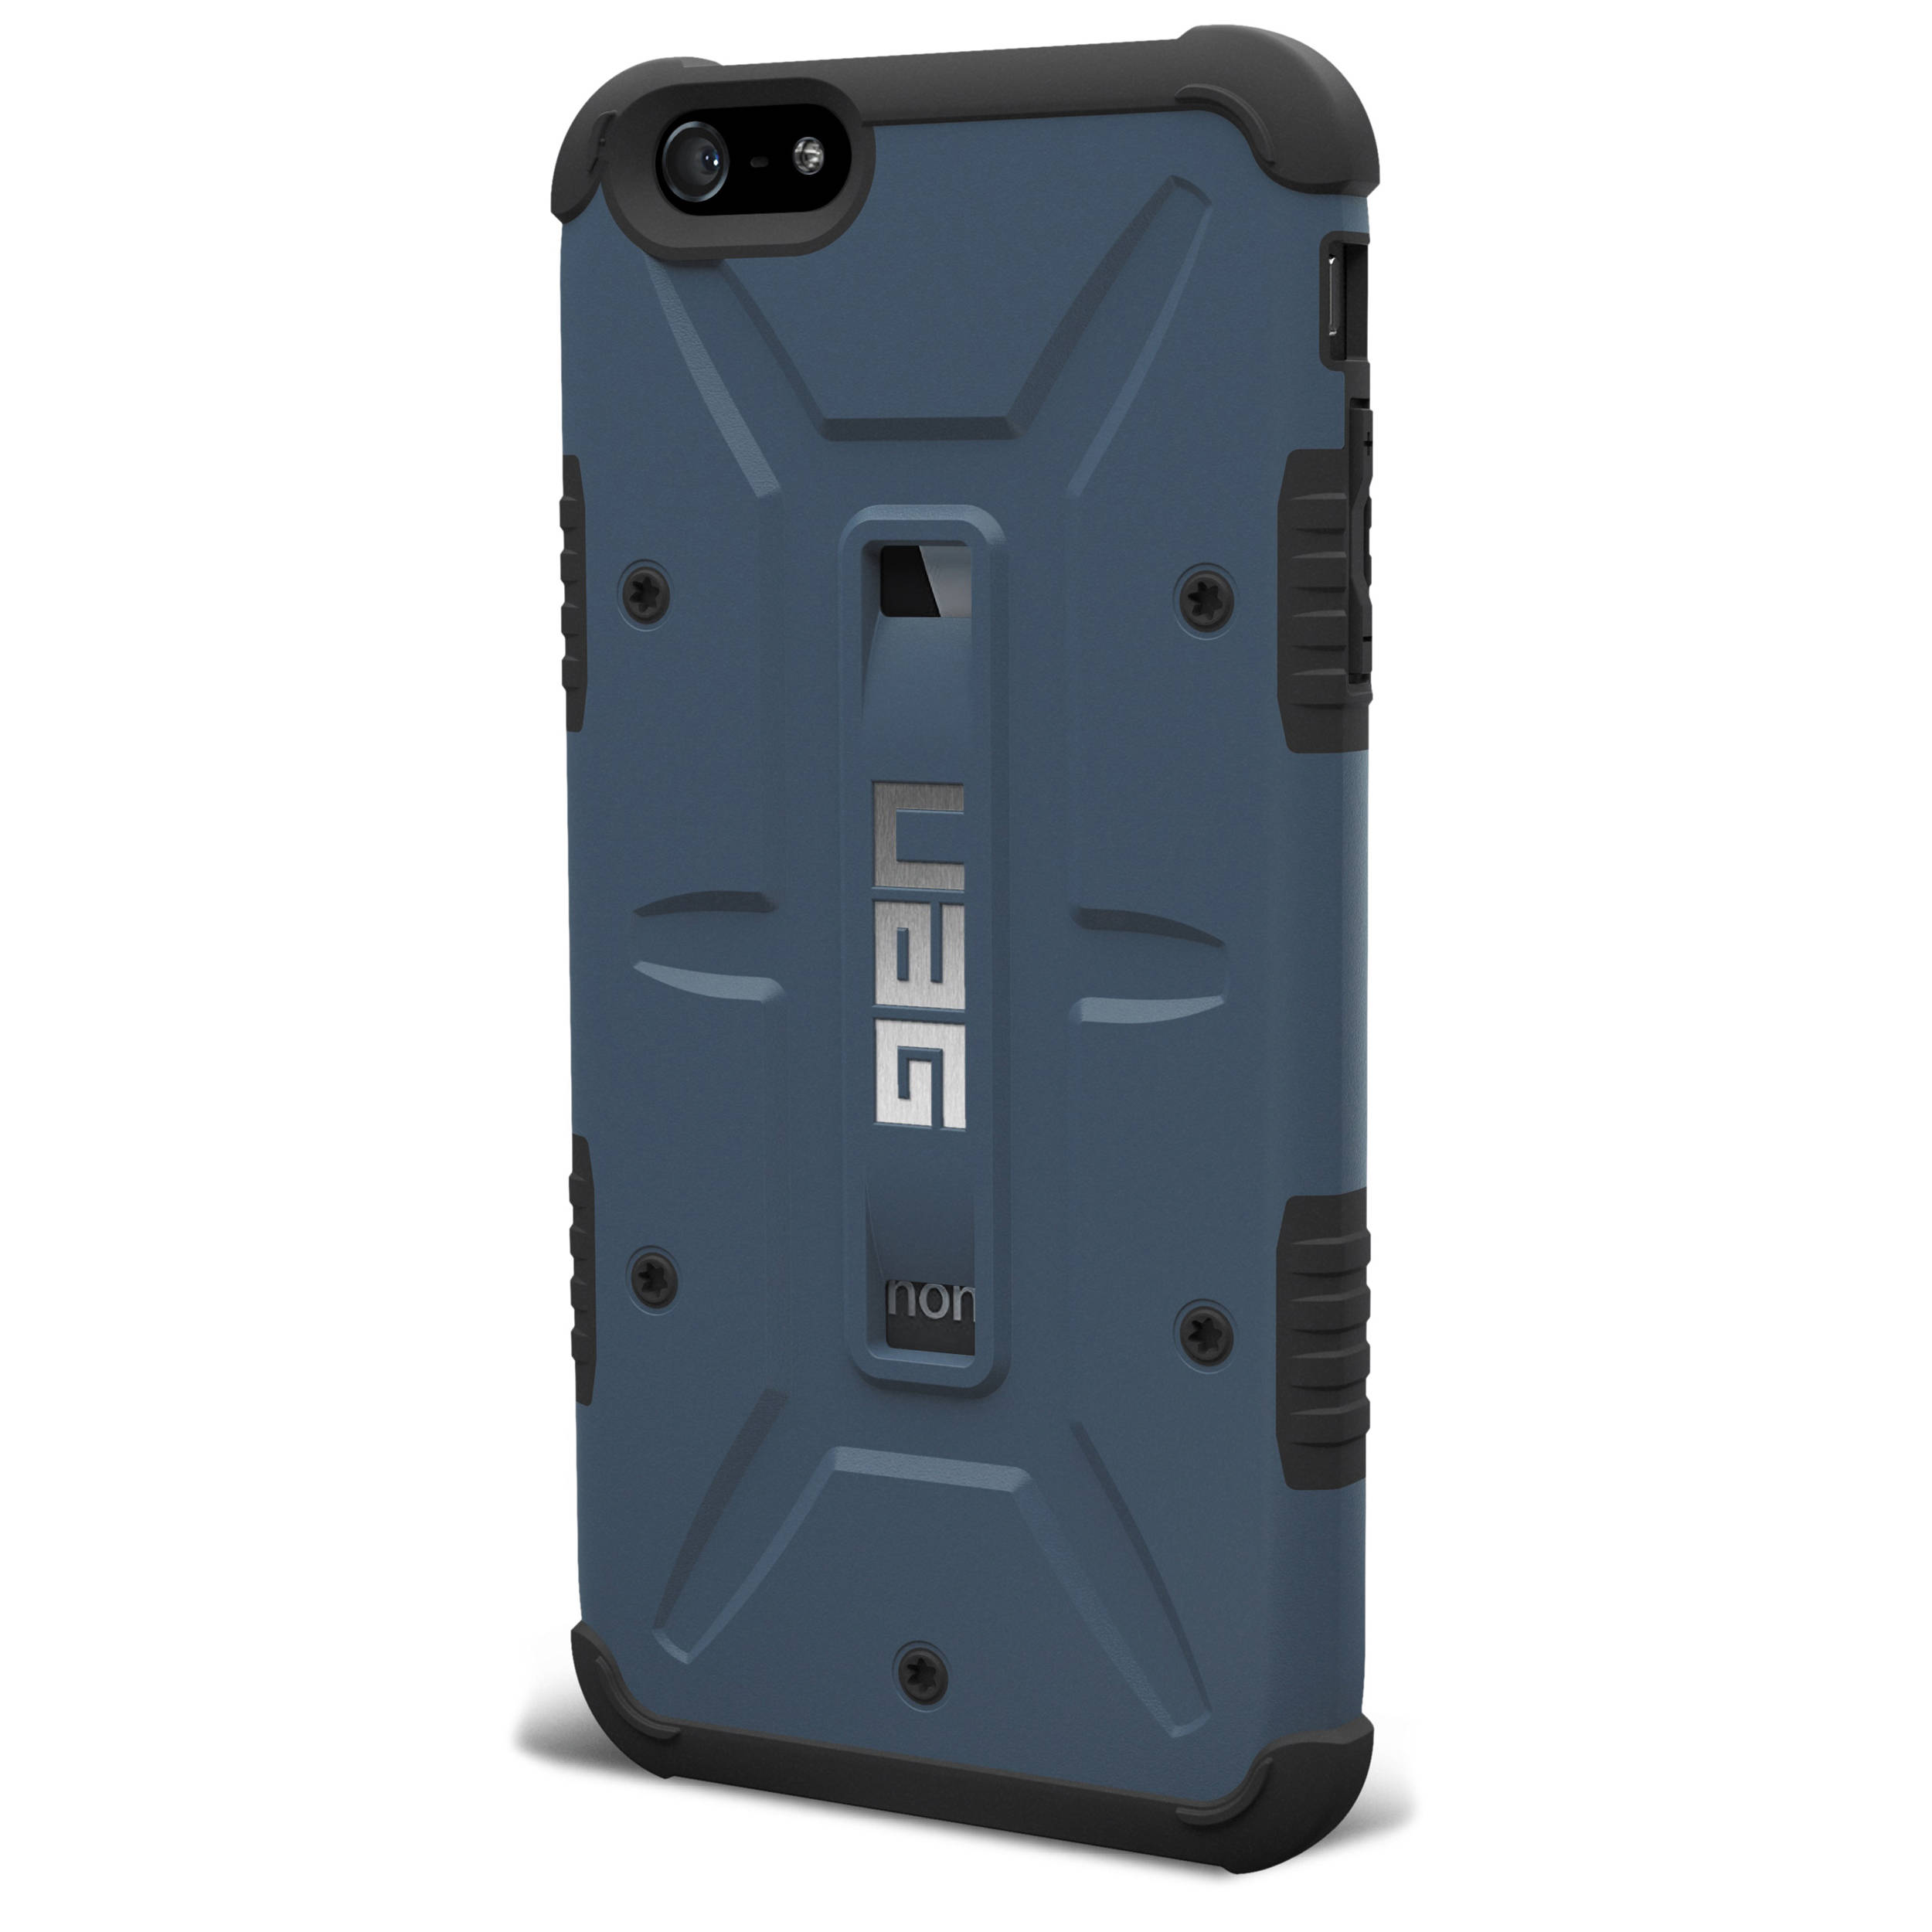 Case Design armor phone cases : Urban Armor Gear Composite Case for iPhone 6/6s UAG-IPH6-SLT Bu0026H